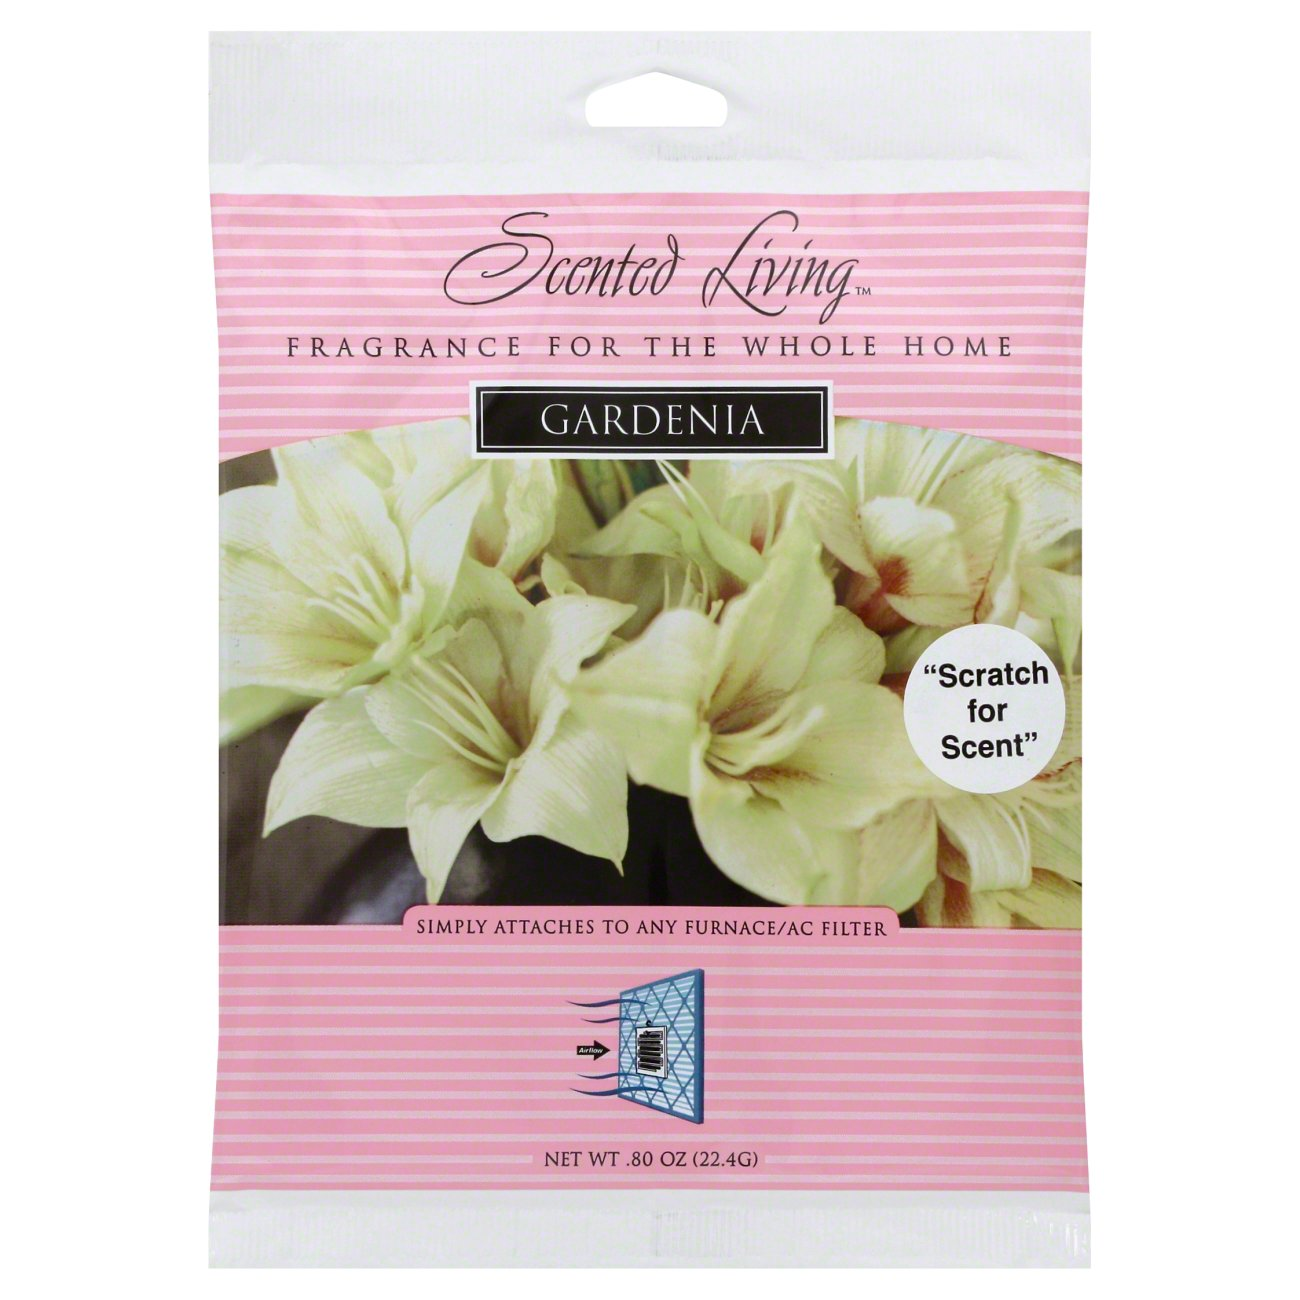 Beautiful Scented Living Gardenia Air Filter Fragrance   Shop Air Filters At HEB